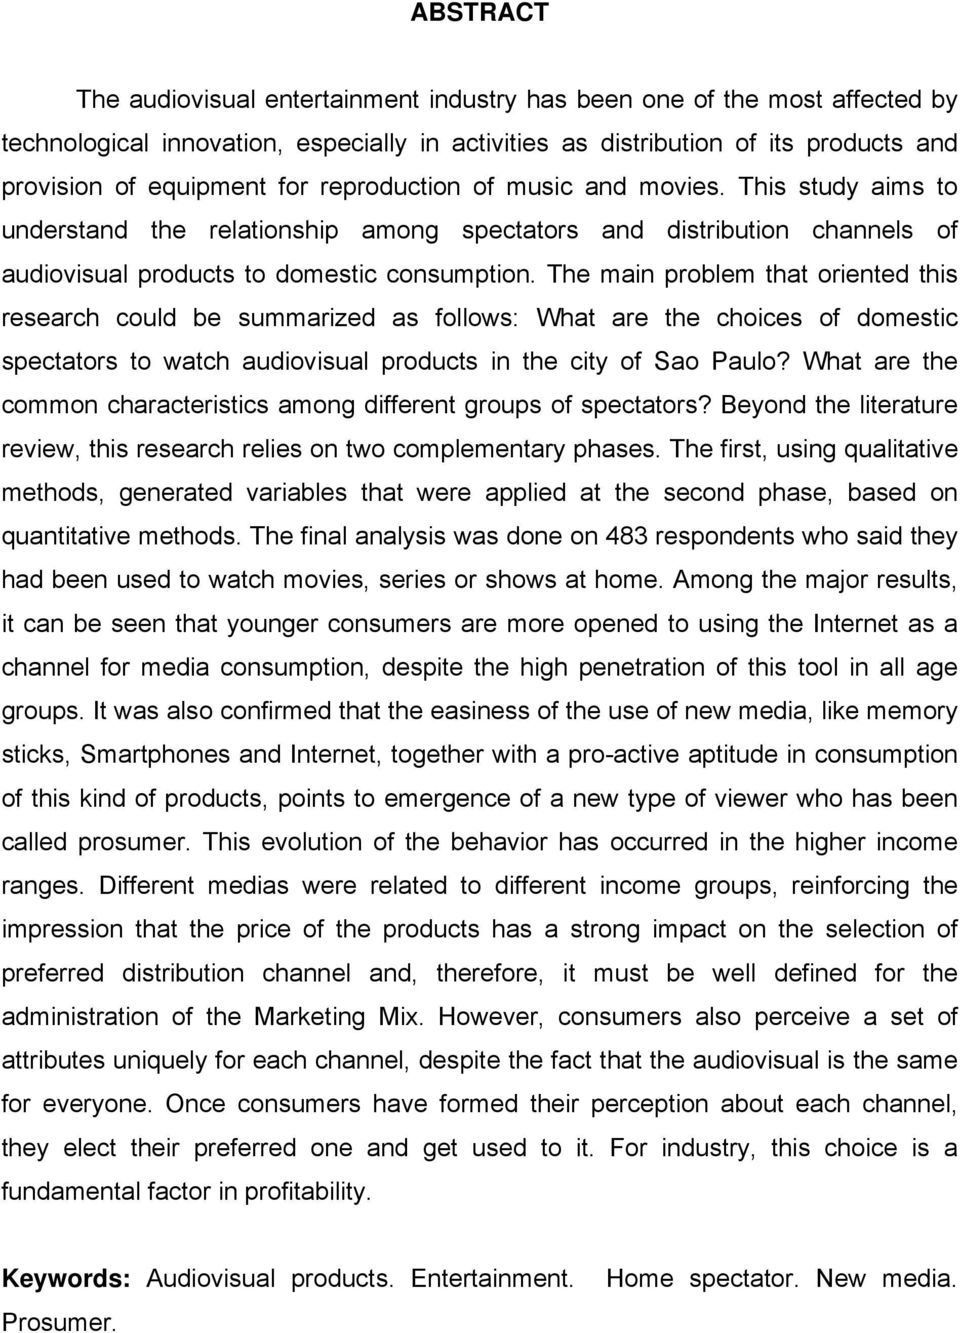 The main problem that oriented this research could be summarized as follows: What are the choices of domestic spectators to watch audiovisual products in the city of Sao Paulo?